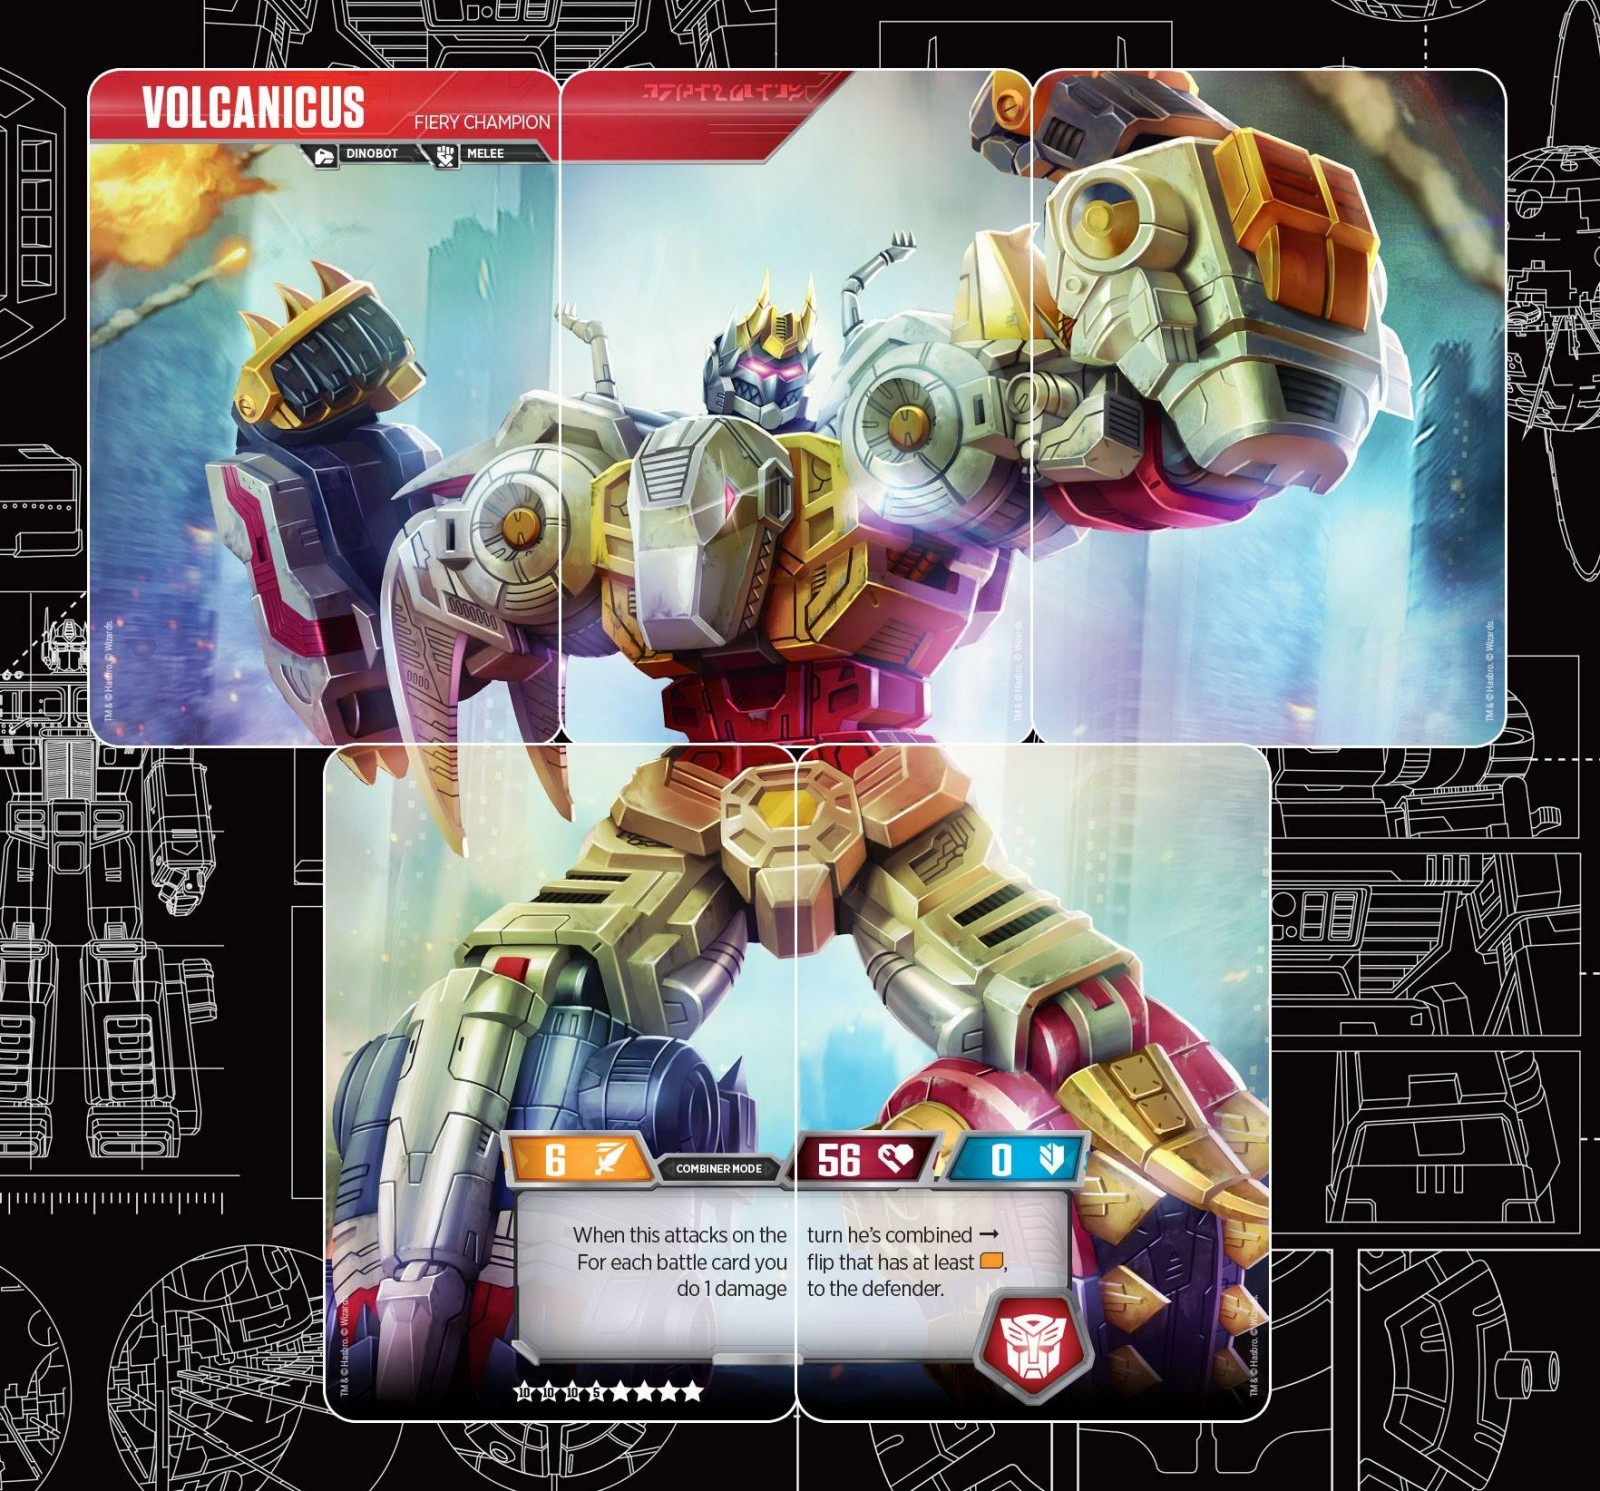 Transformers News: Volcanicus In-depth Analysis And More Reveals For Official Transformers Trading Card Game